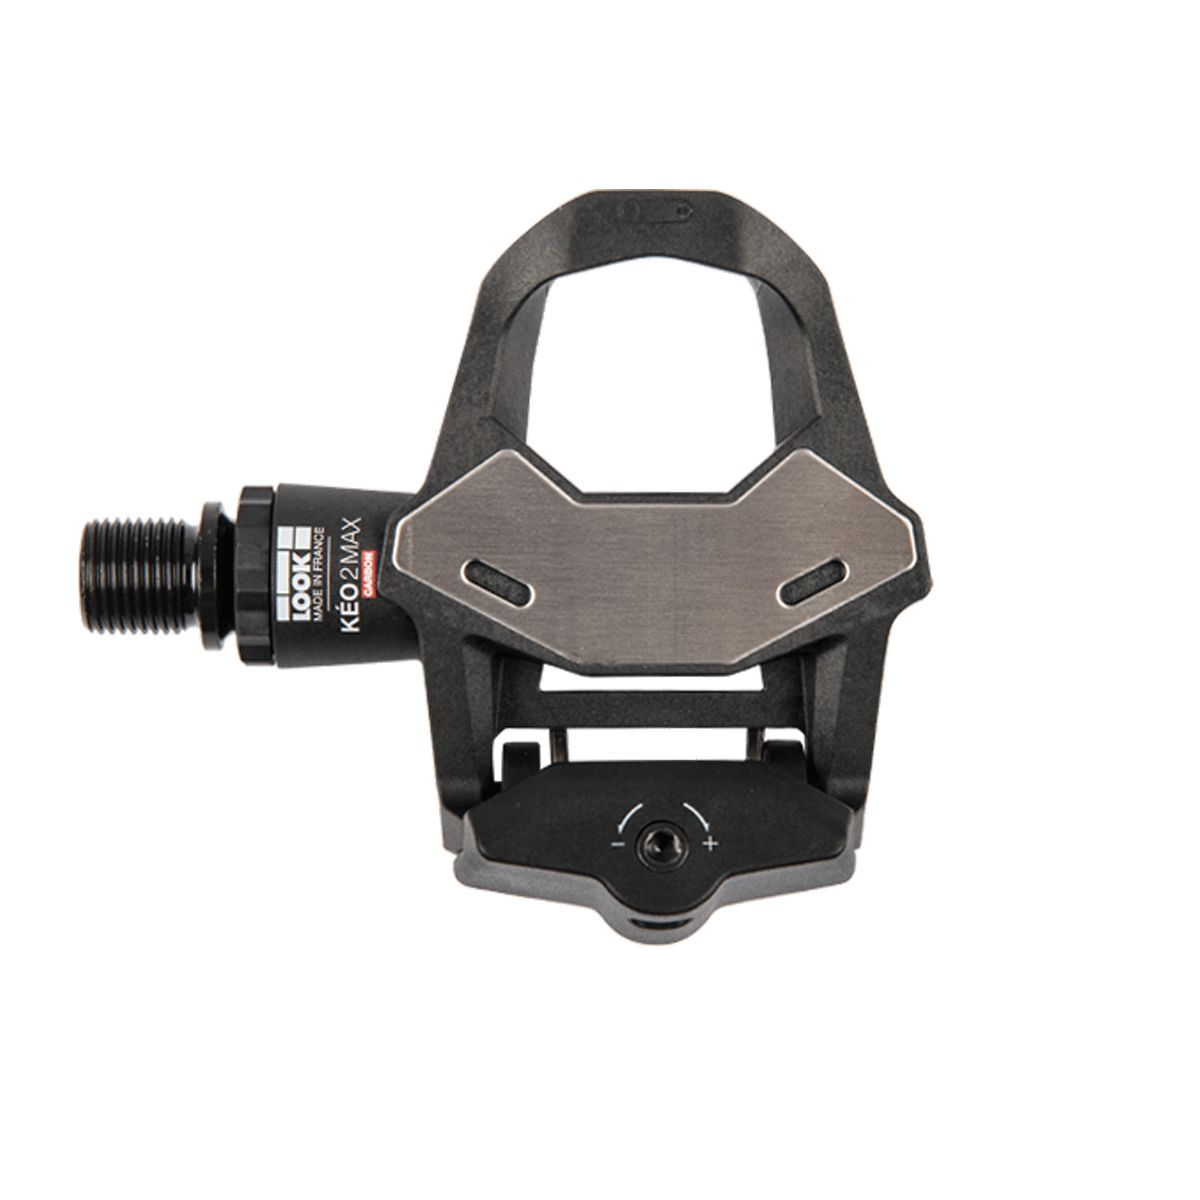 Look Keo 2 Max Carbon Pedals With Keo Grip Cleat | Pedals